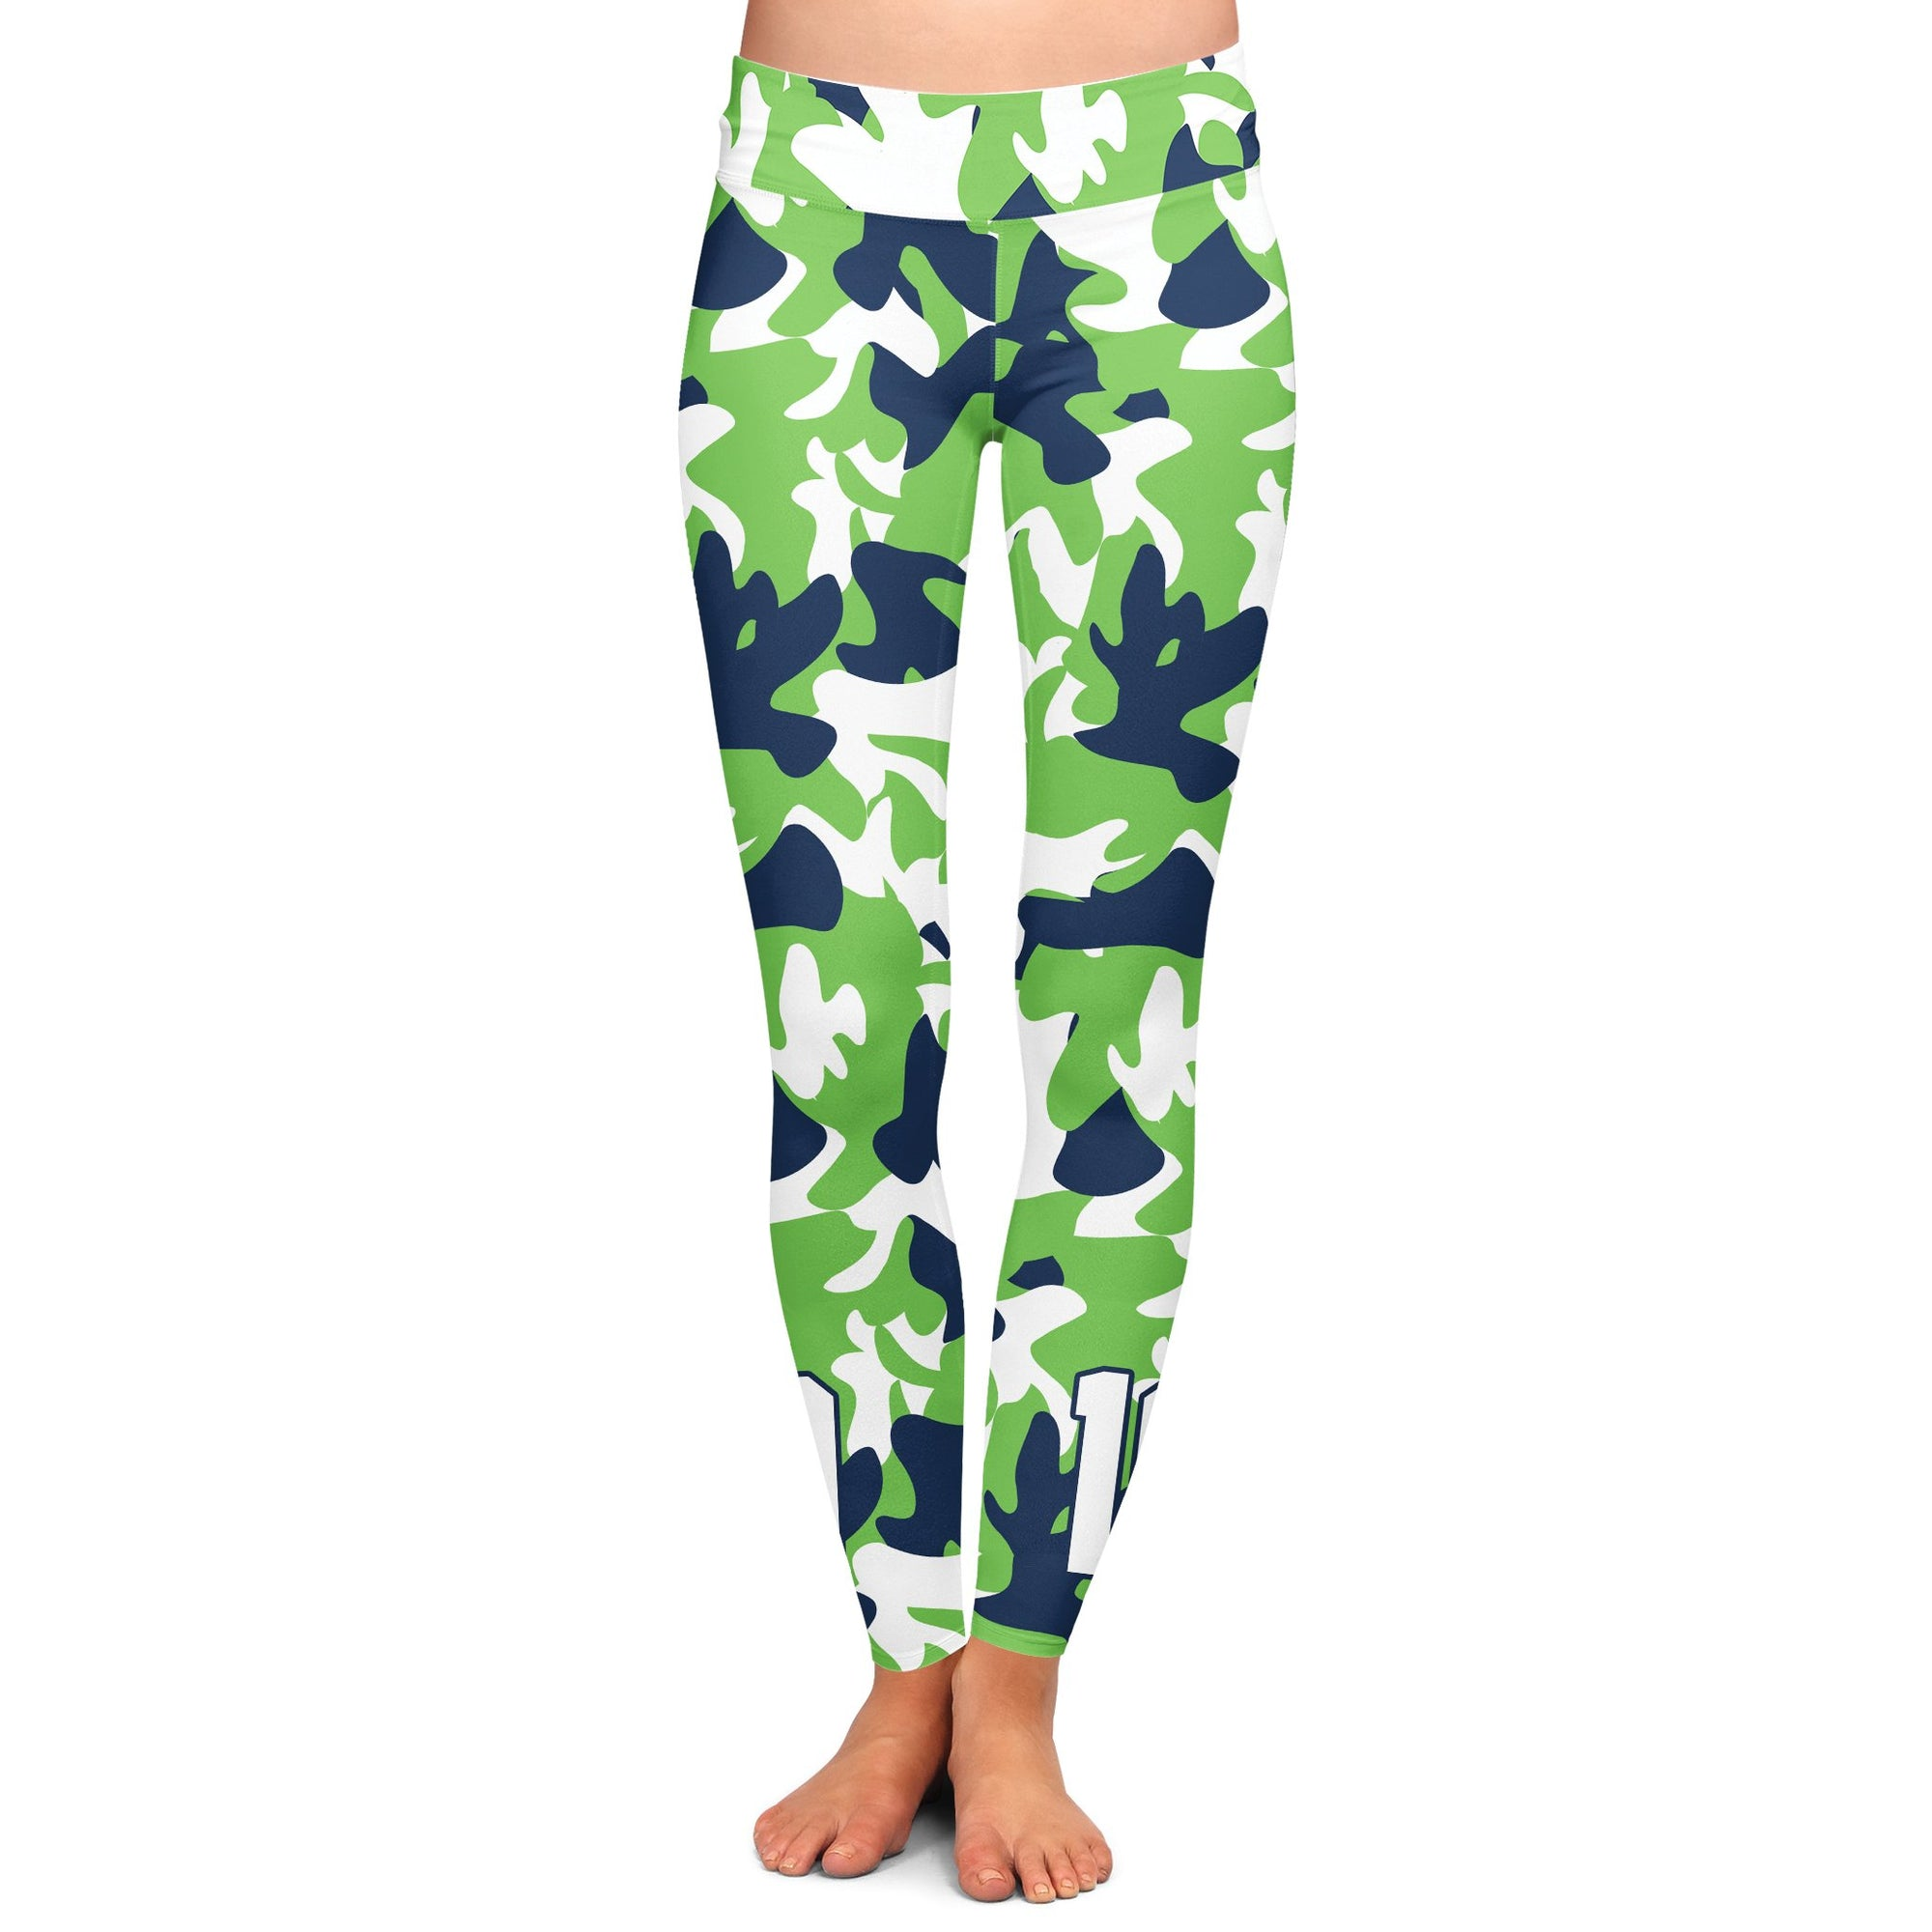 Flash Camo Green Yoga Pants | flashgordonshop.com